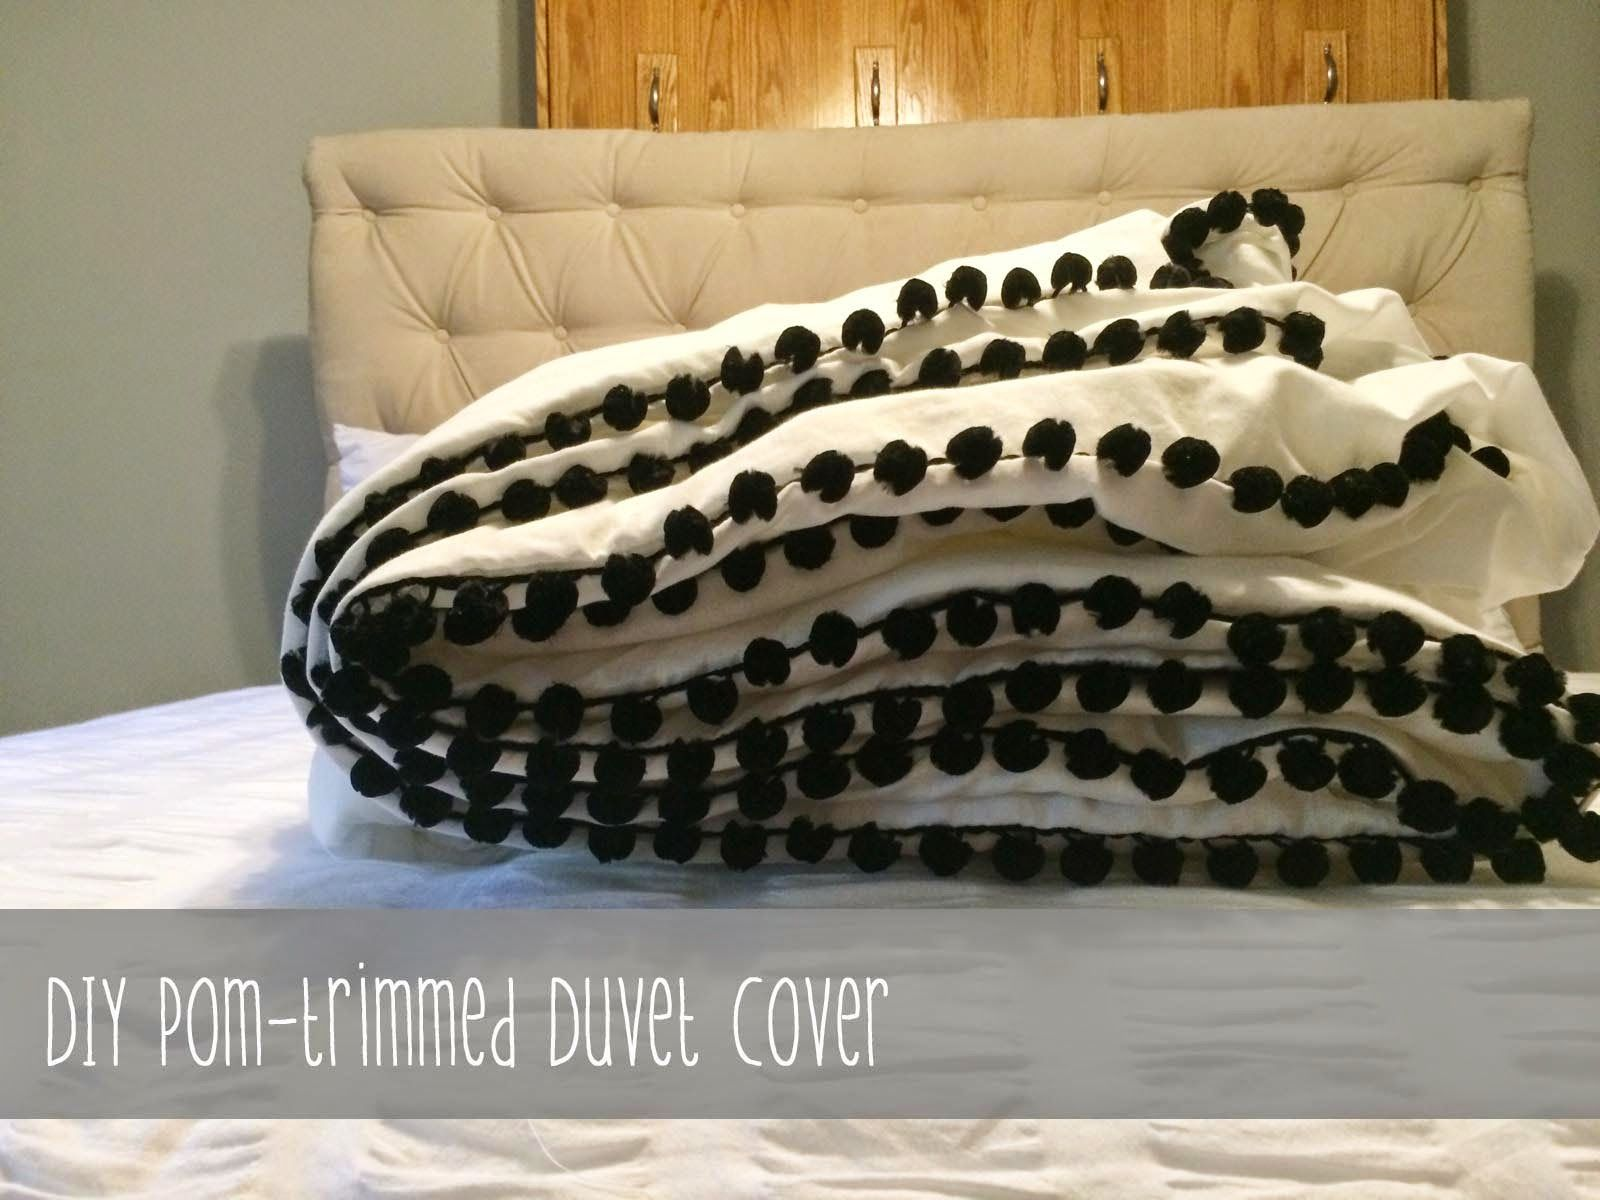 From House to Home: DIY - Pom-trimmed Duvet Cover